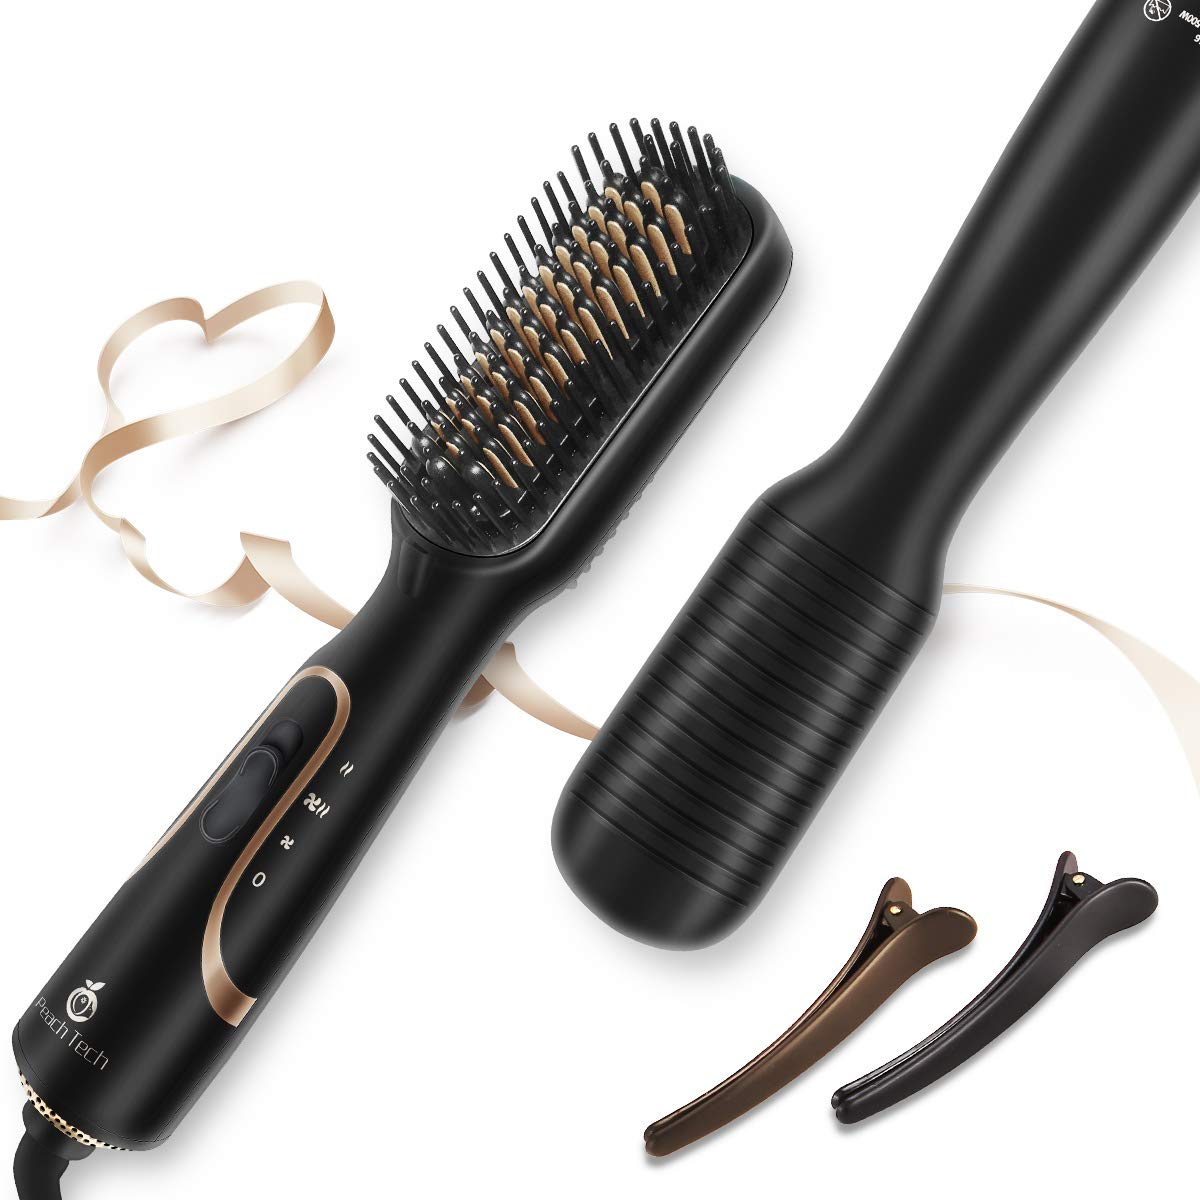 Hair Dryer Brush - 4 in 1 One Step Hair Dryer and Styler, Hair Brush Dryer/Straightener/Curler/Comb - Ceramic Ionic Blow Dryer Hot Air Brush - Mother's Day Gifts for Women